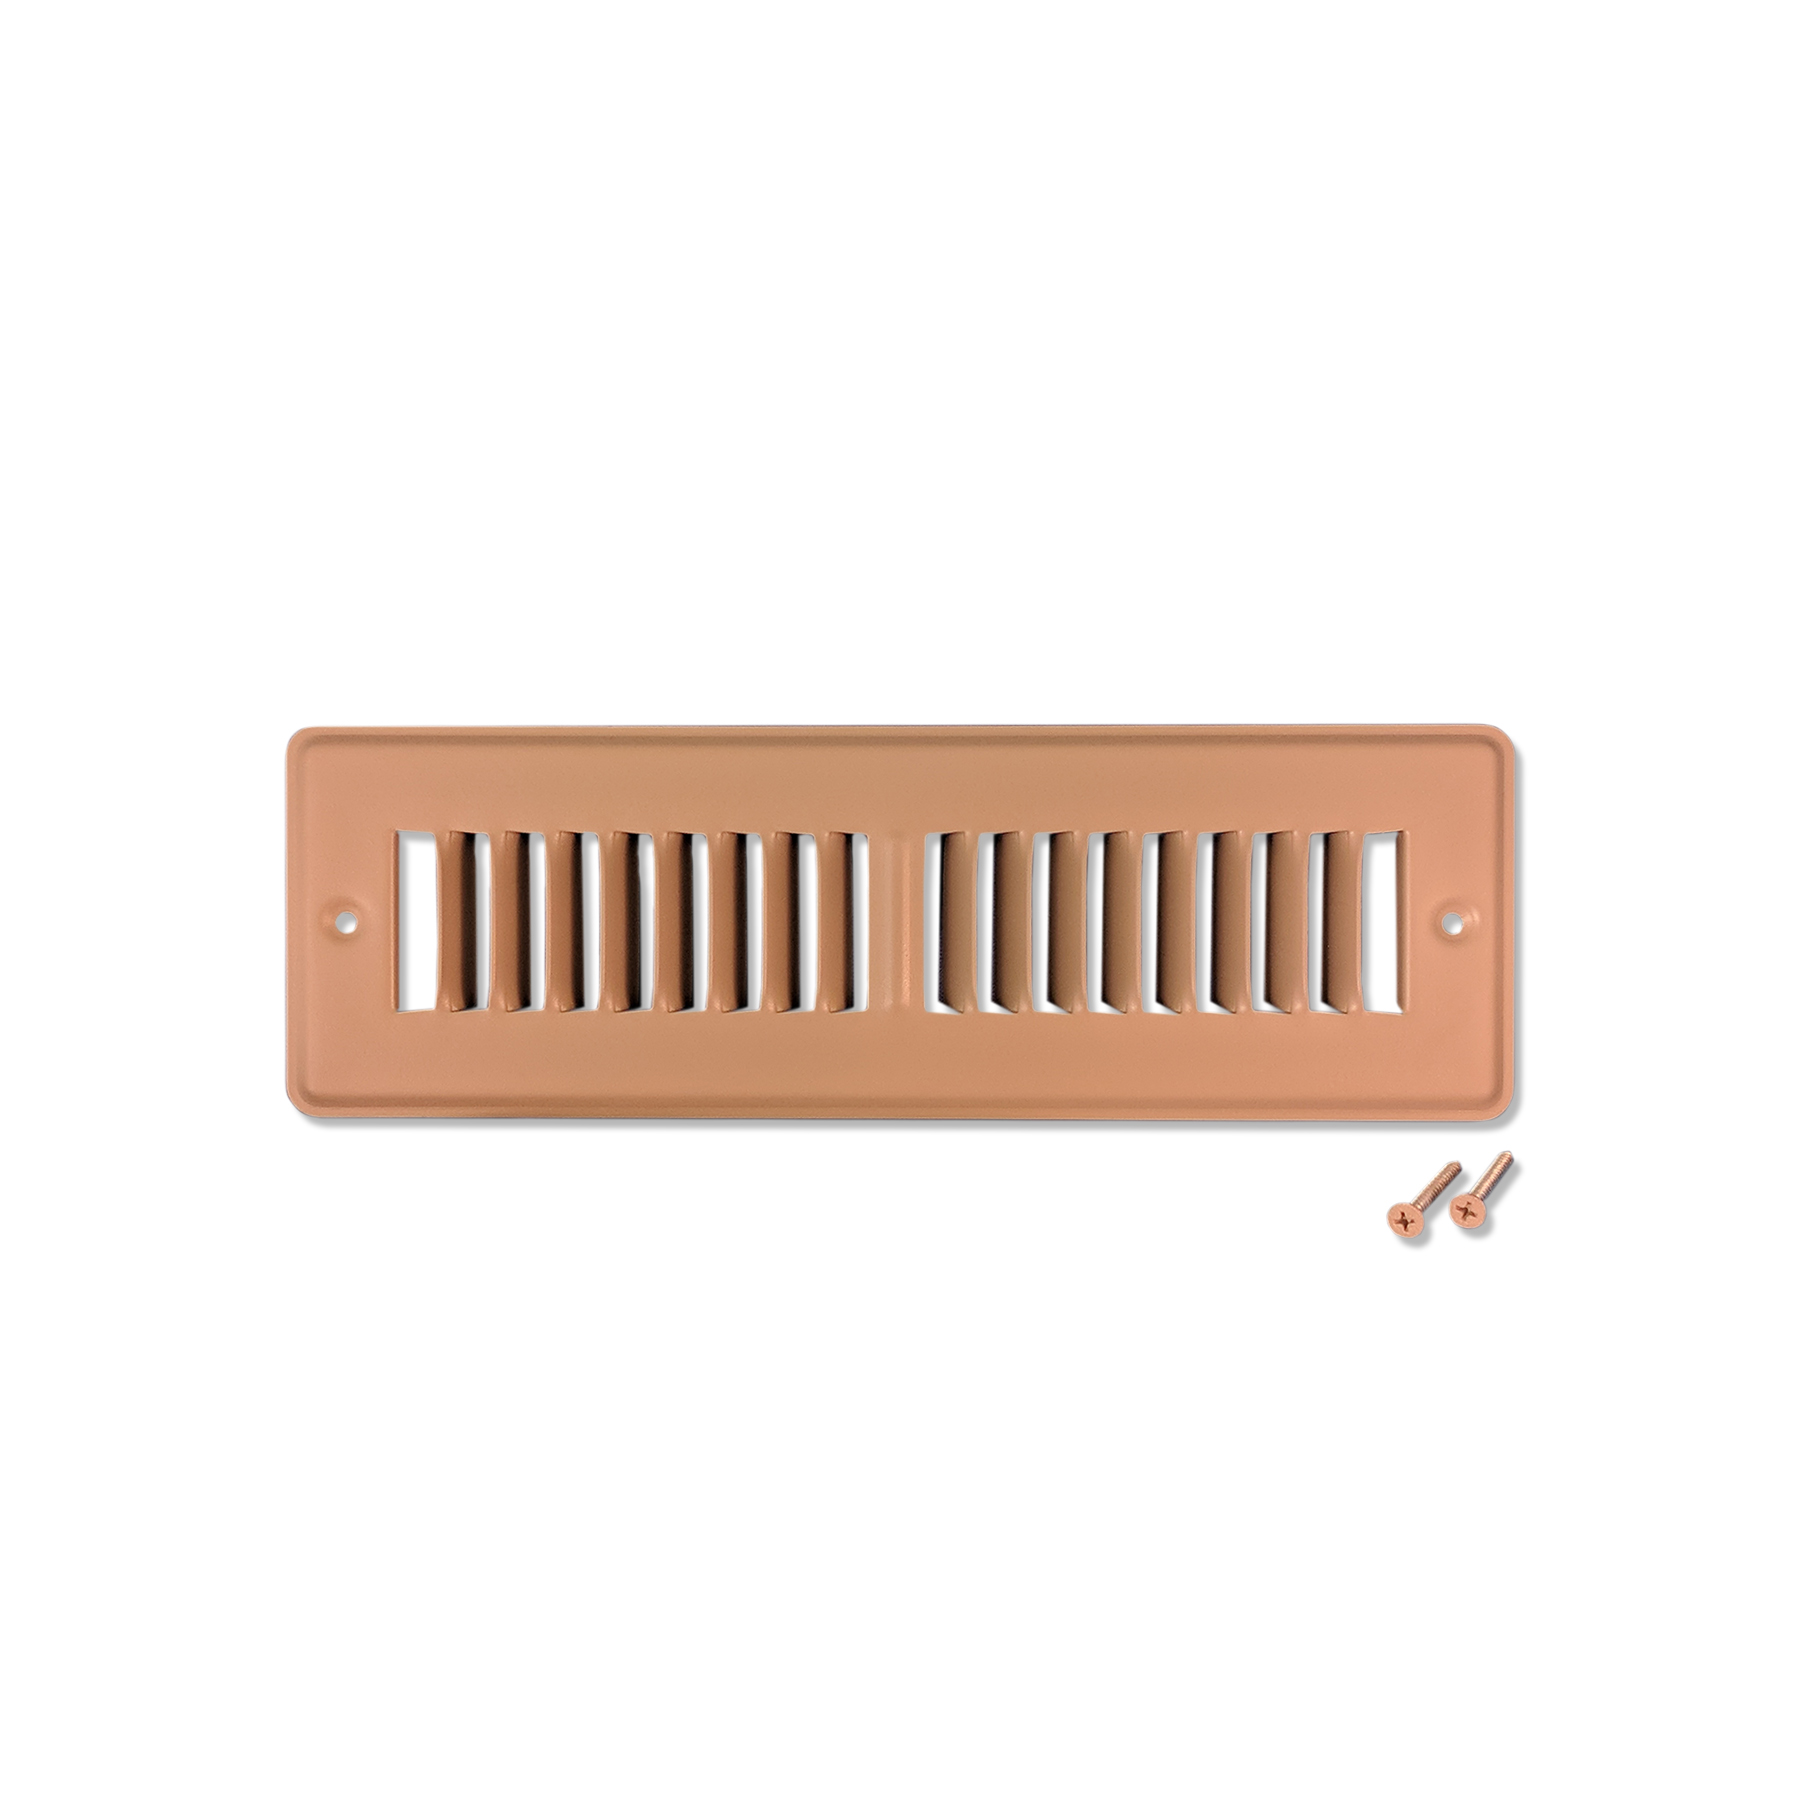 Cozy Grille, 10 in. x 2 in